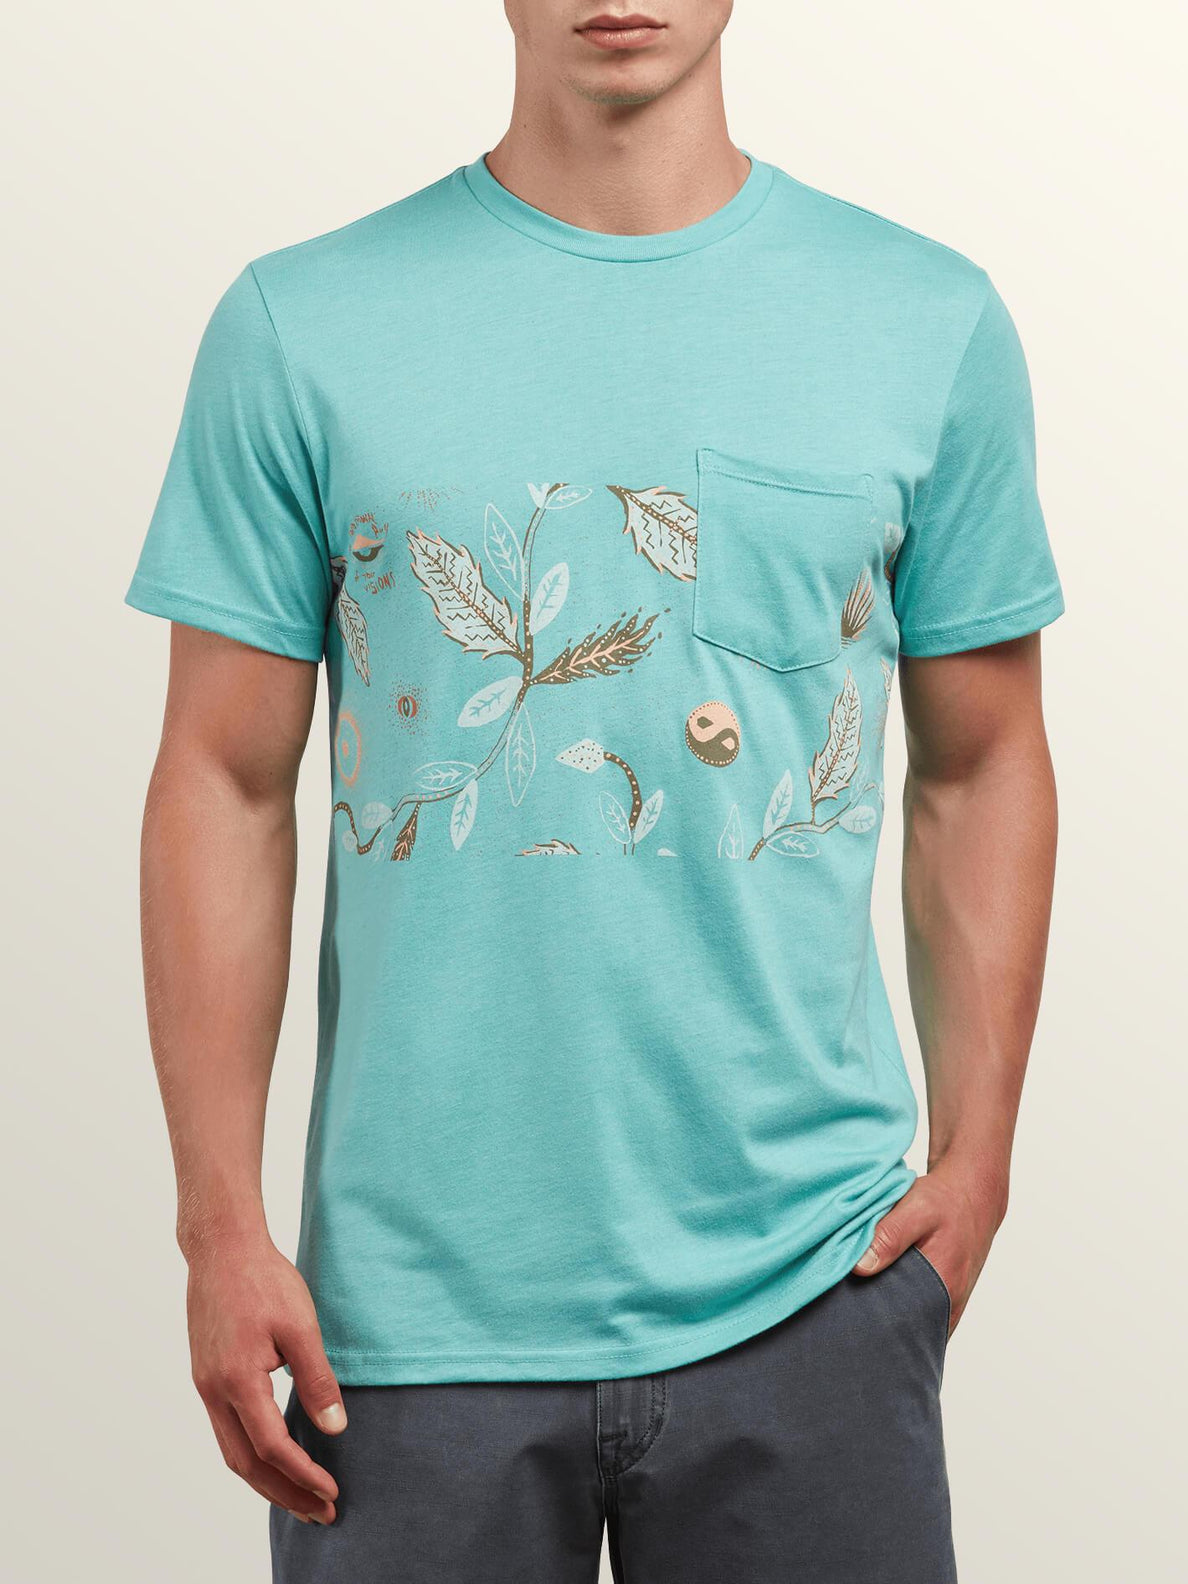 Sea-weed Short Sleeve Pocket Tee In Turquoise, Front View